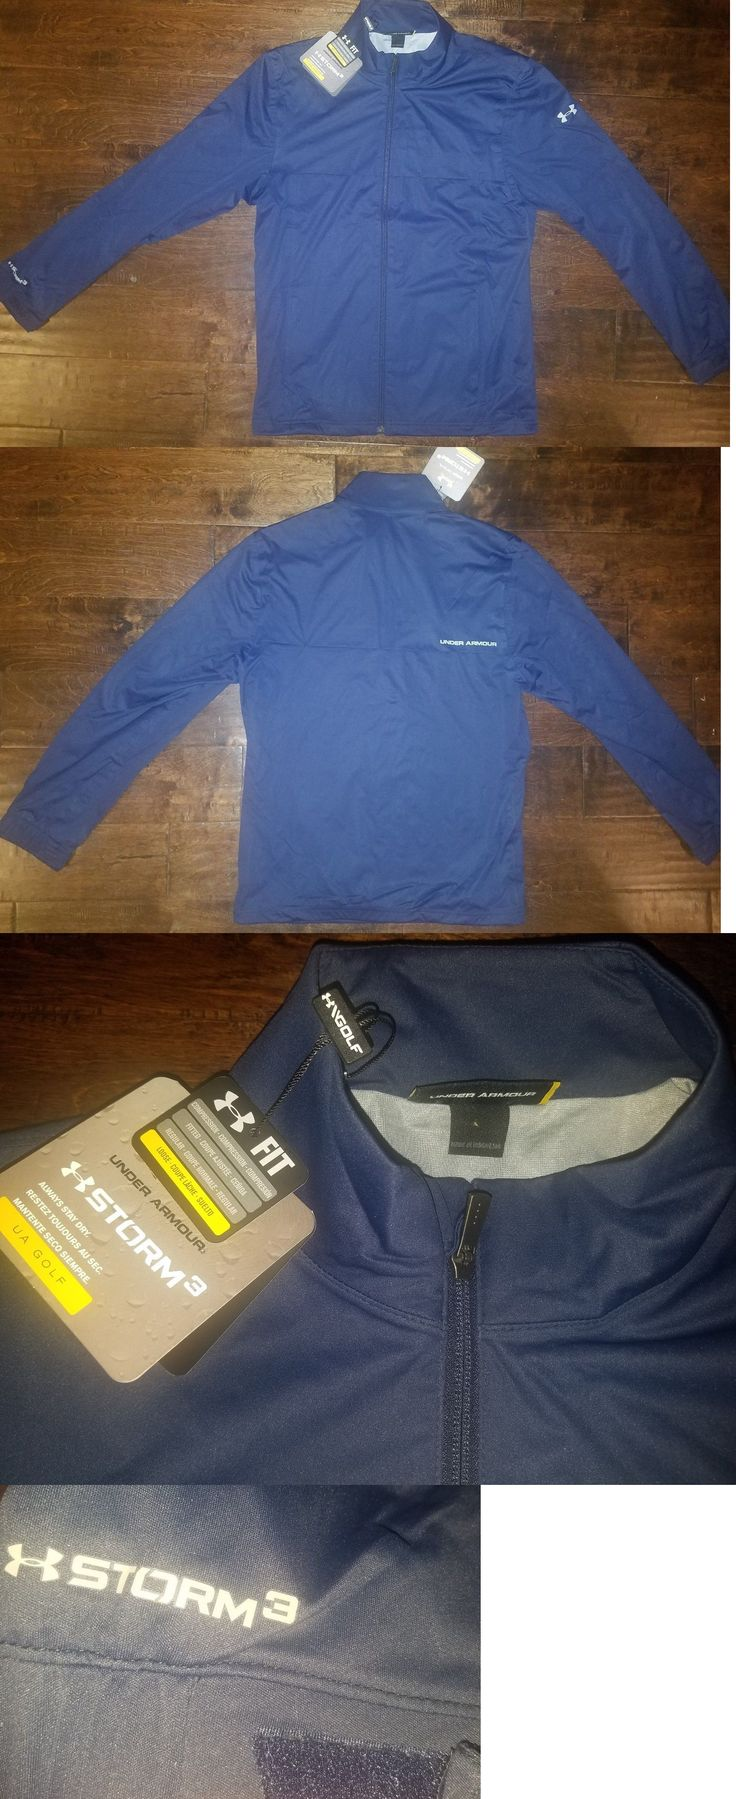 Coats and Jackets 181134: Under Armour Men S Storm 3 Golf Waterproof Wind Proof Rain Jacket Small New -> BUY IT NOW ONLY: $57 on eBay!